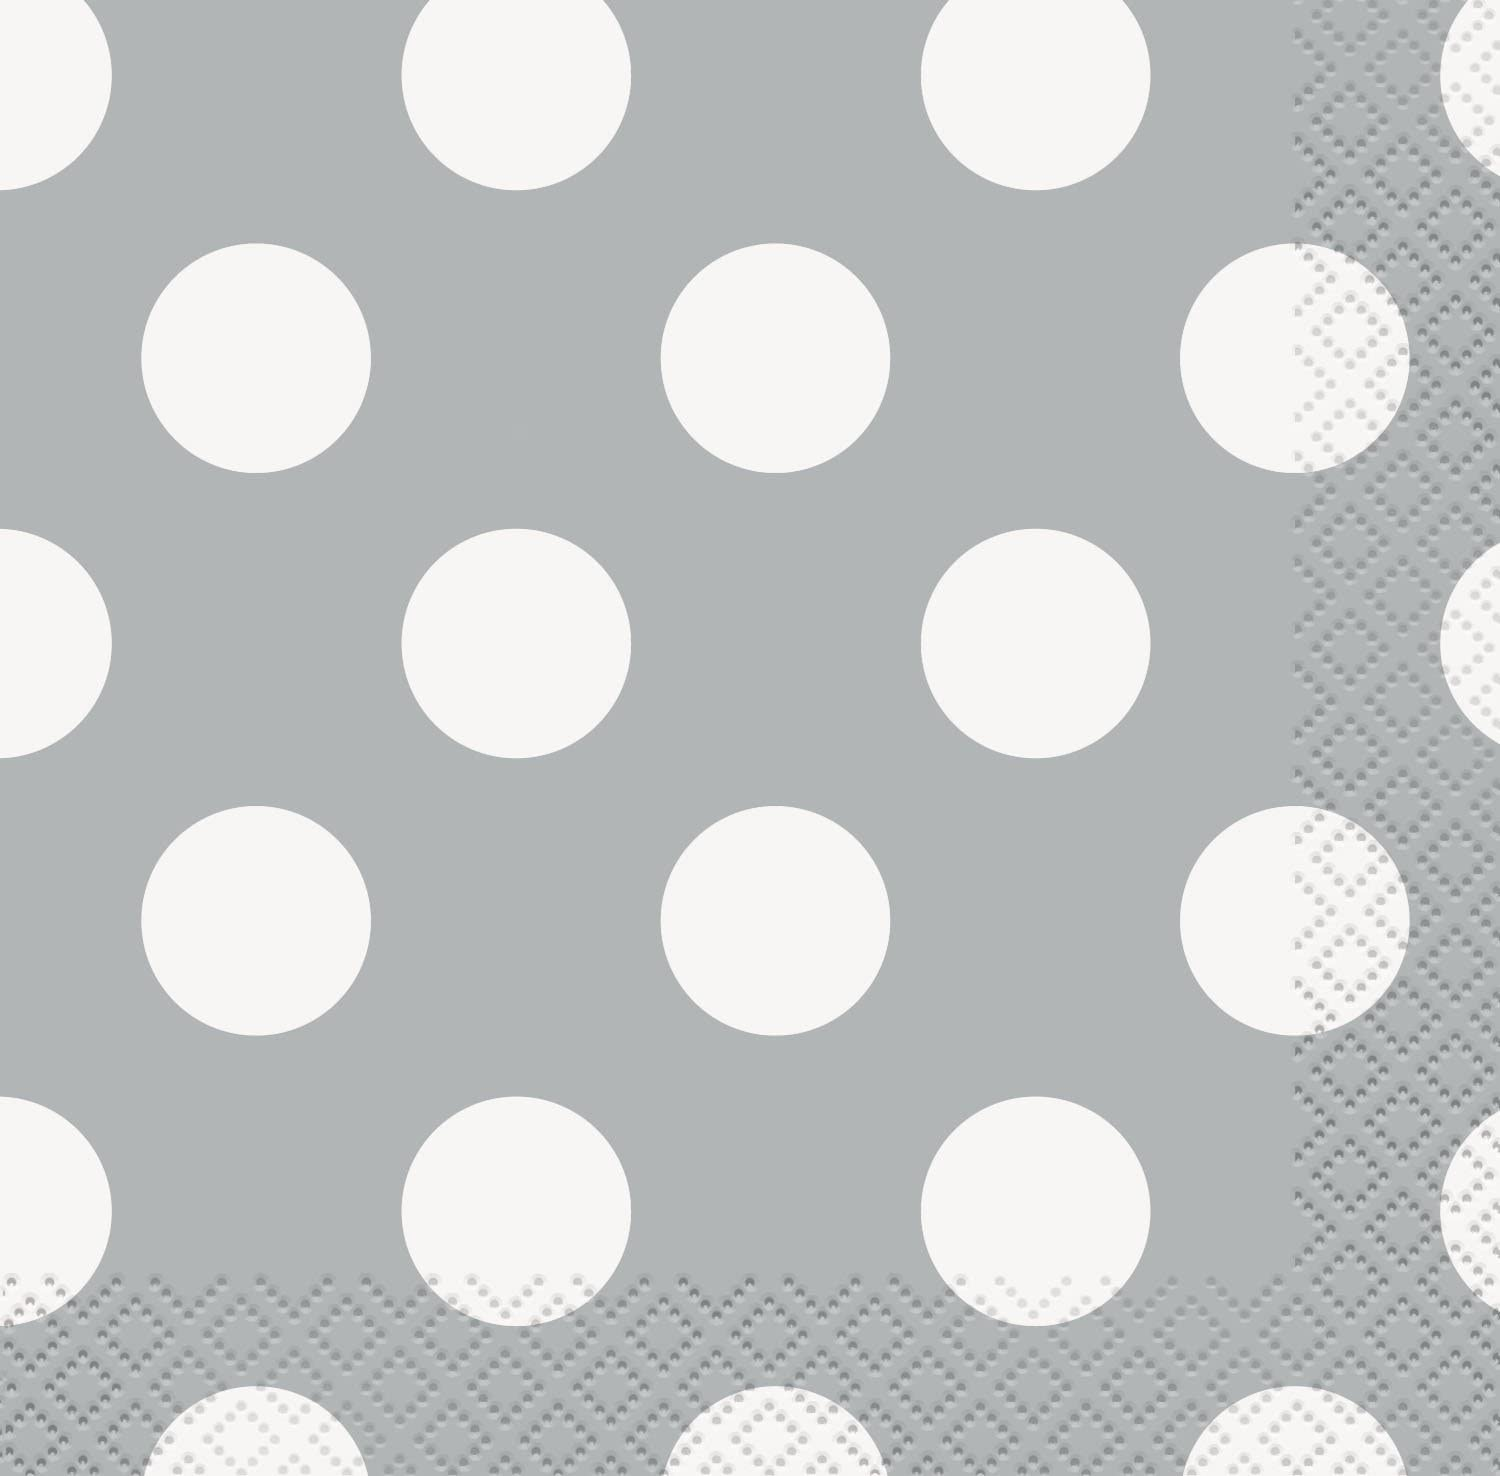 Unique Disposable Polka Dot Beverage Napkins, DIY Party Supplies, Pack of 16, Silver